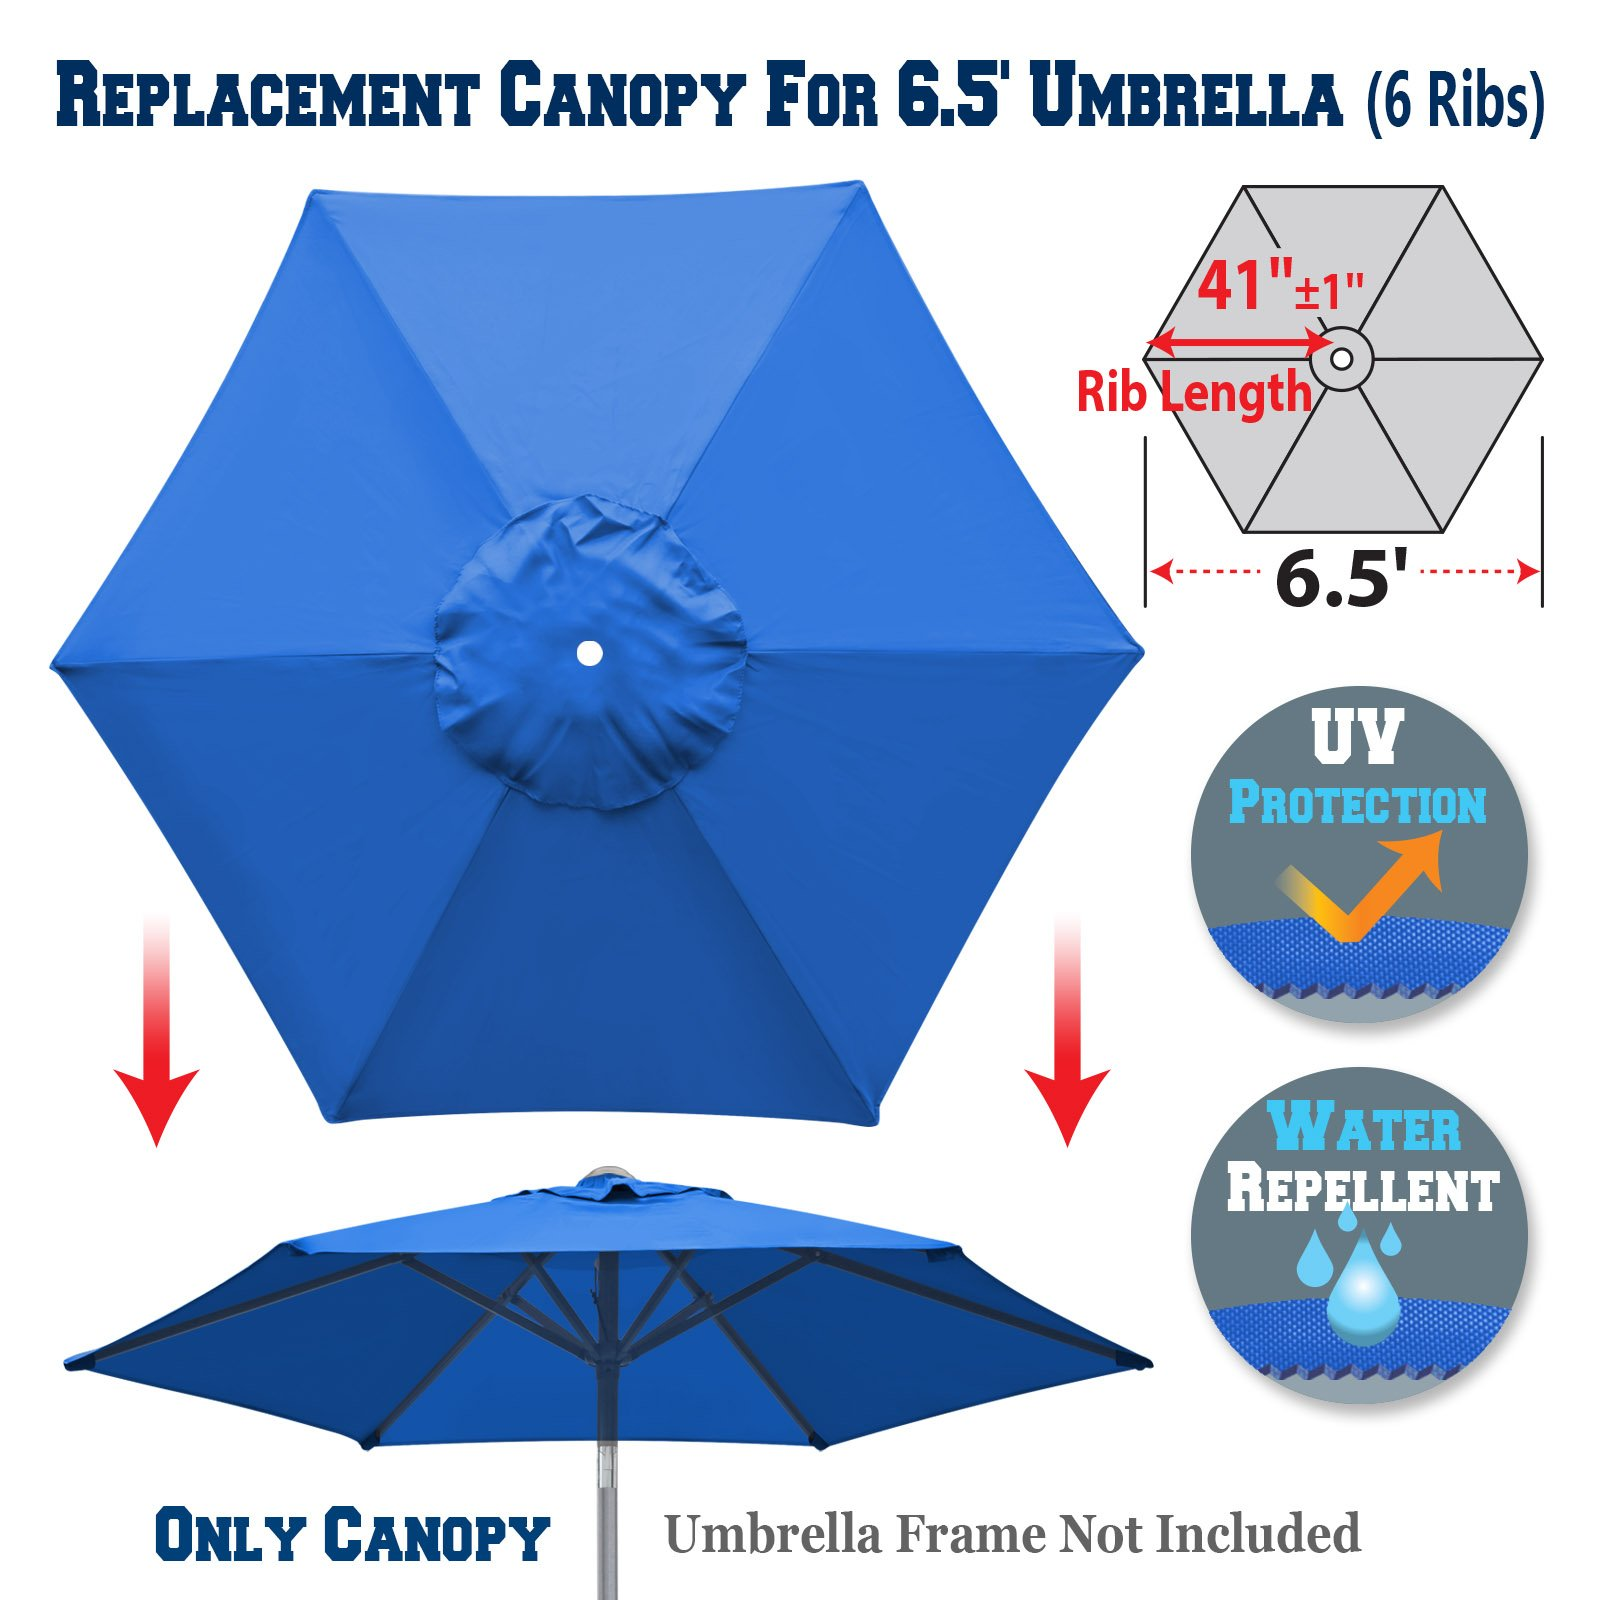 BenefitUSA Replacement Umbrella Canopy Cover for 6.5ft 6 Ribs Patio Market Umbrella (CANOPY ONLY) (Blue) by BenefitUSA